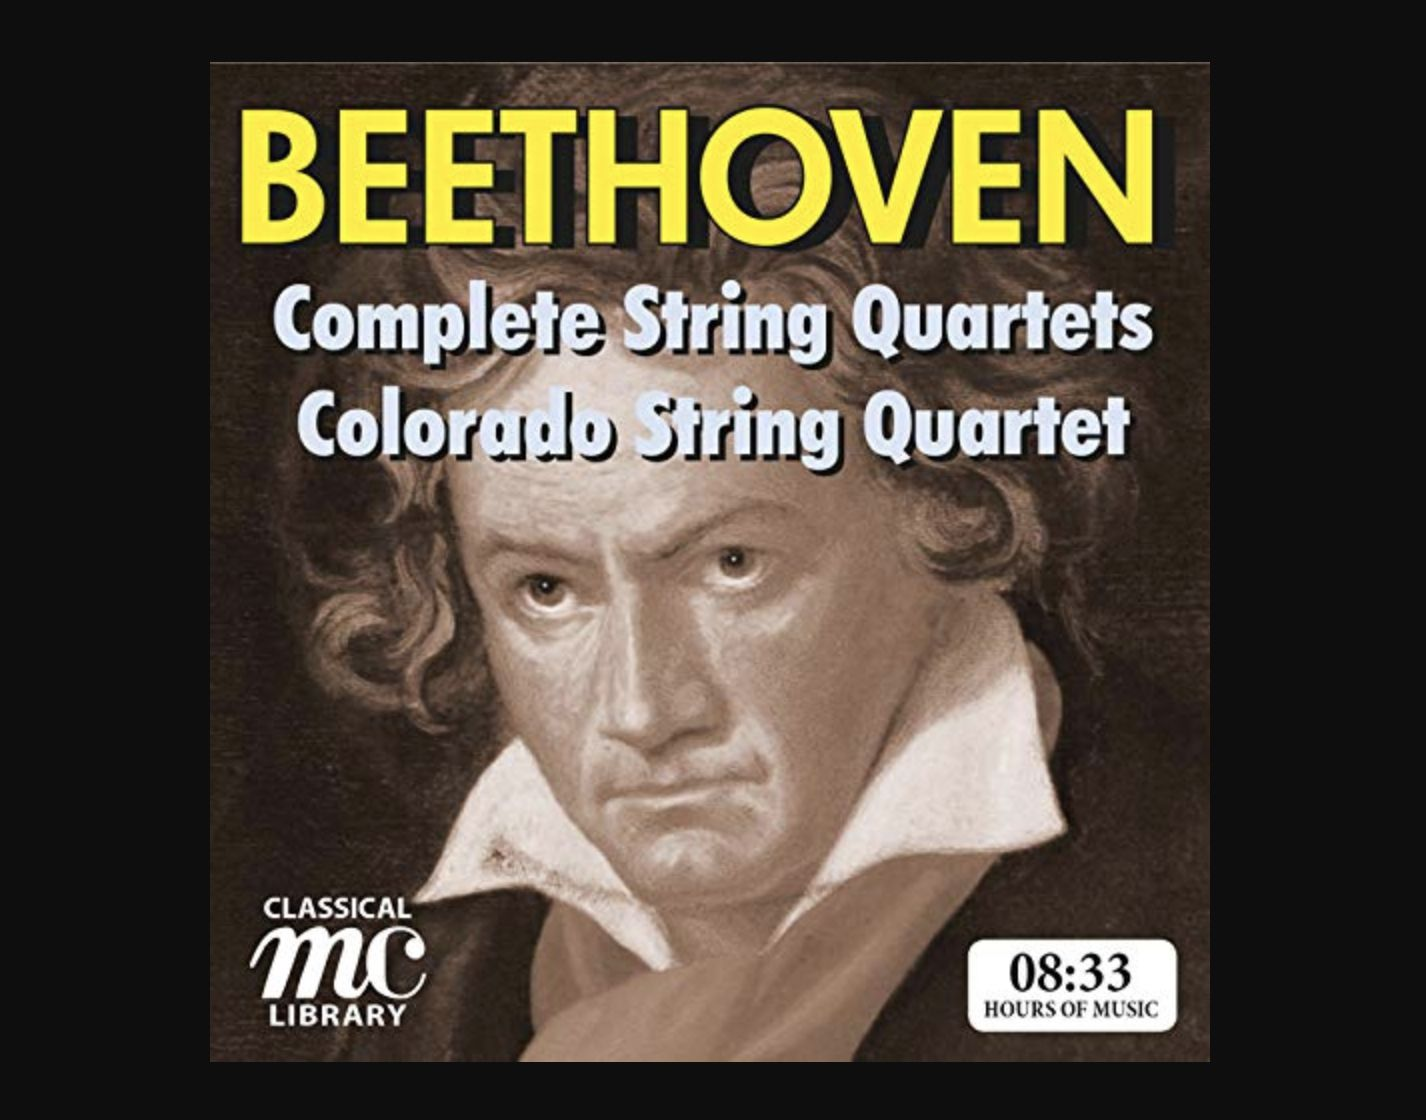 The Best Beethoven Albums